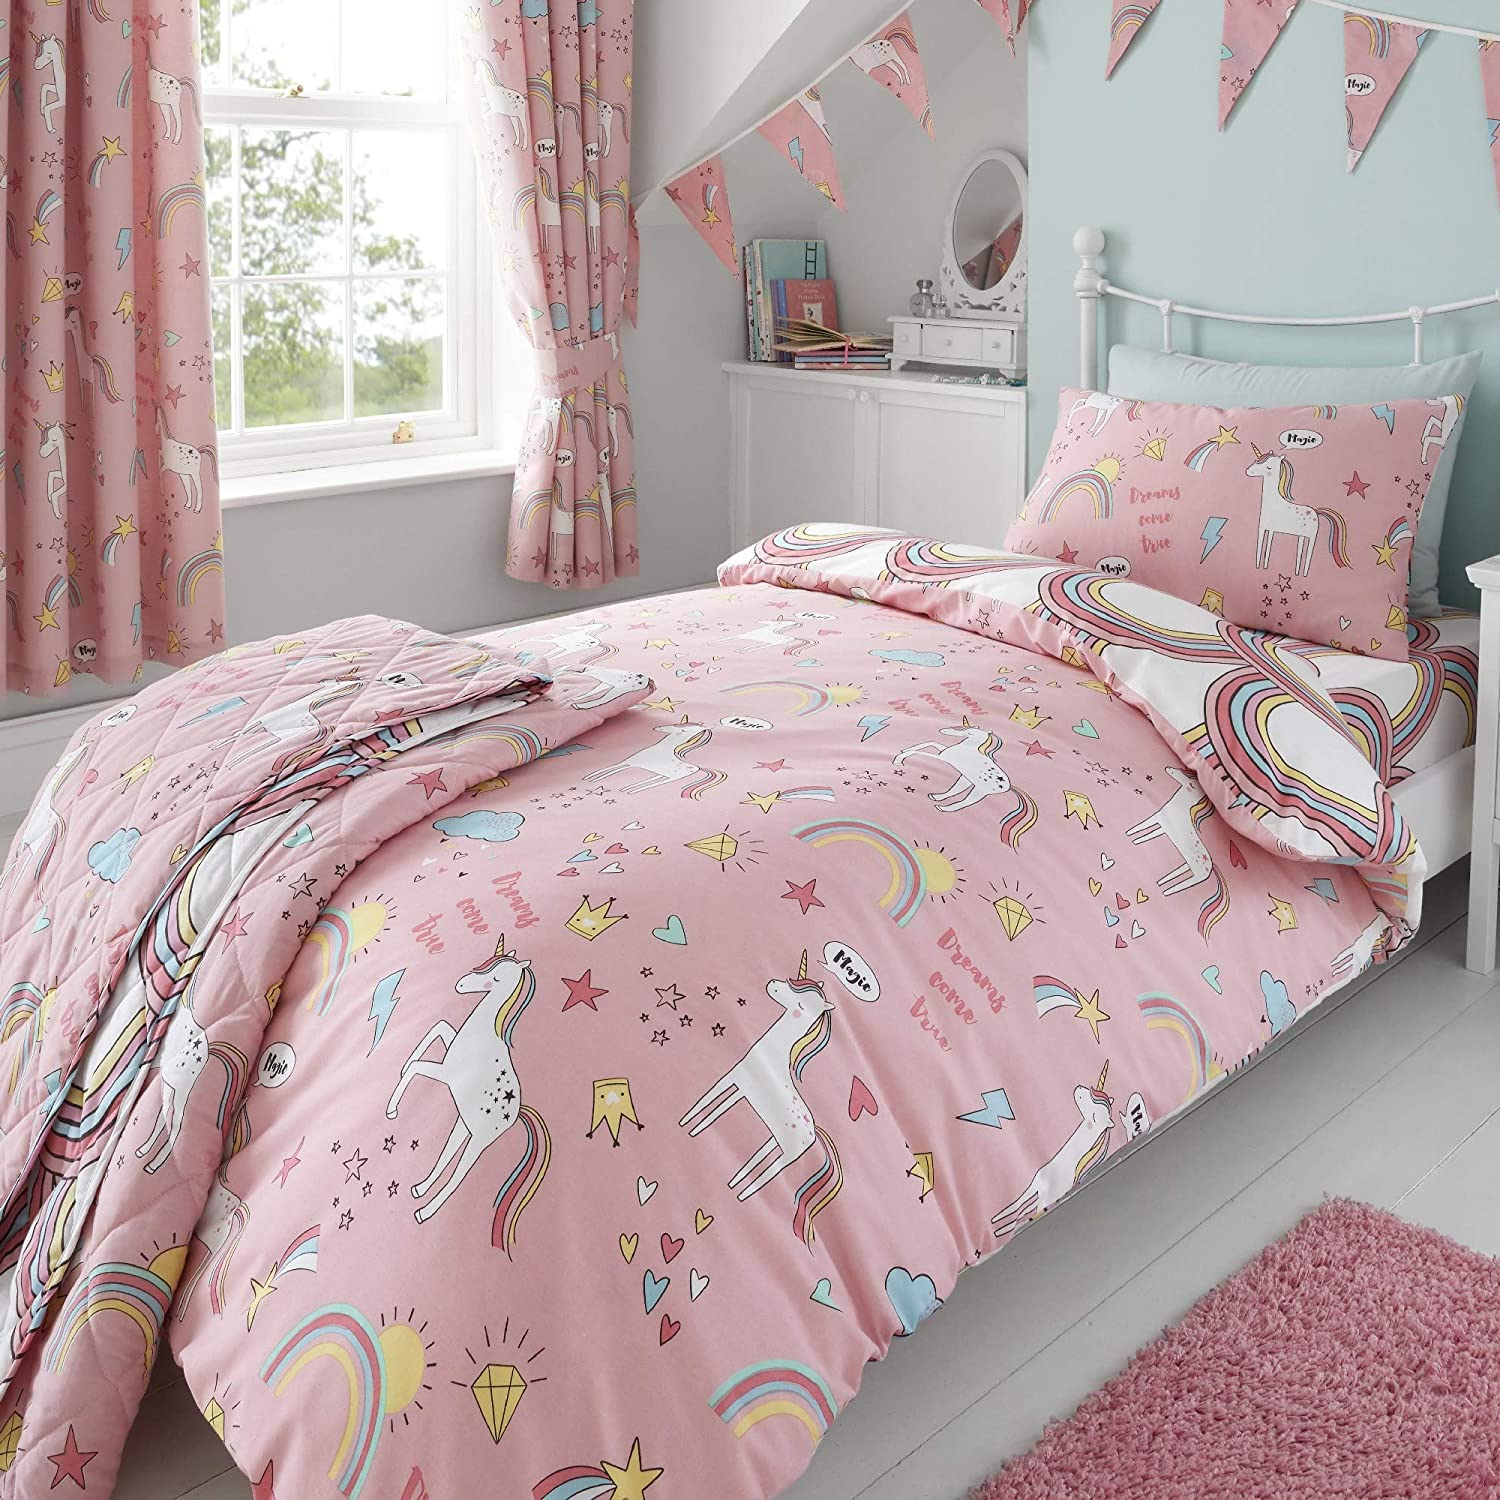 Happy Linen Company Girls Kids Unicorns Rainbows Pink Single Reversible Duvet Cover Bedding Set Amazon Co Uk Kitchen Home